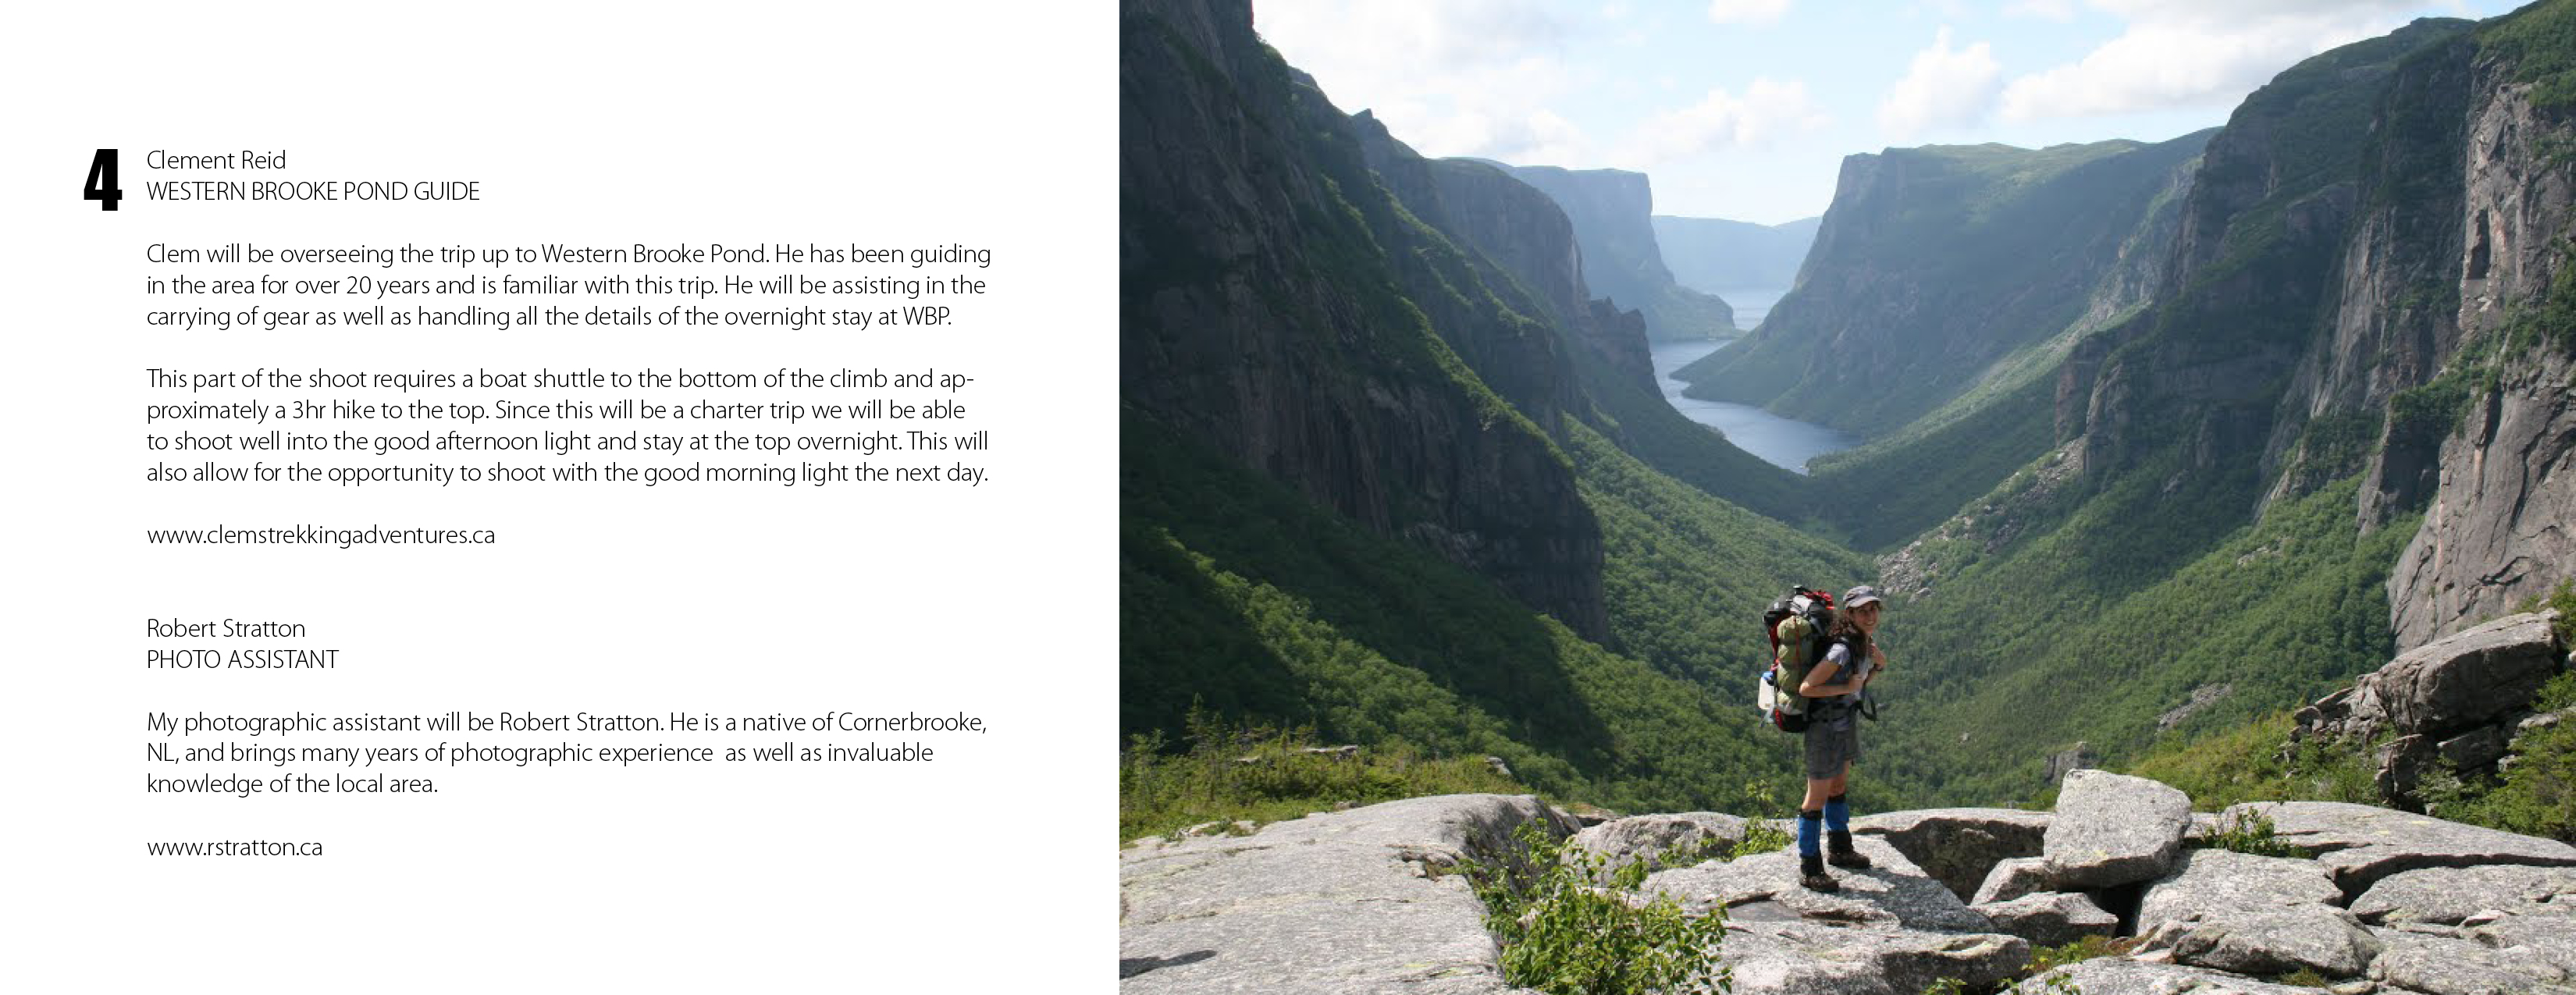 GrosMorne_CreativeBrief_6-7